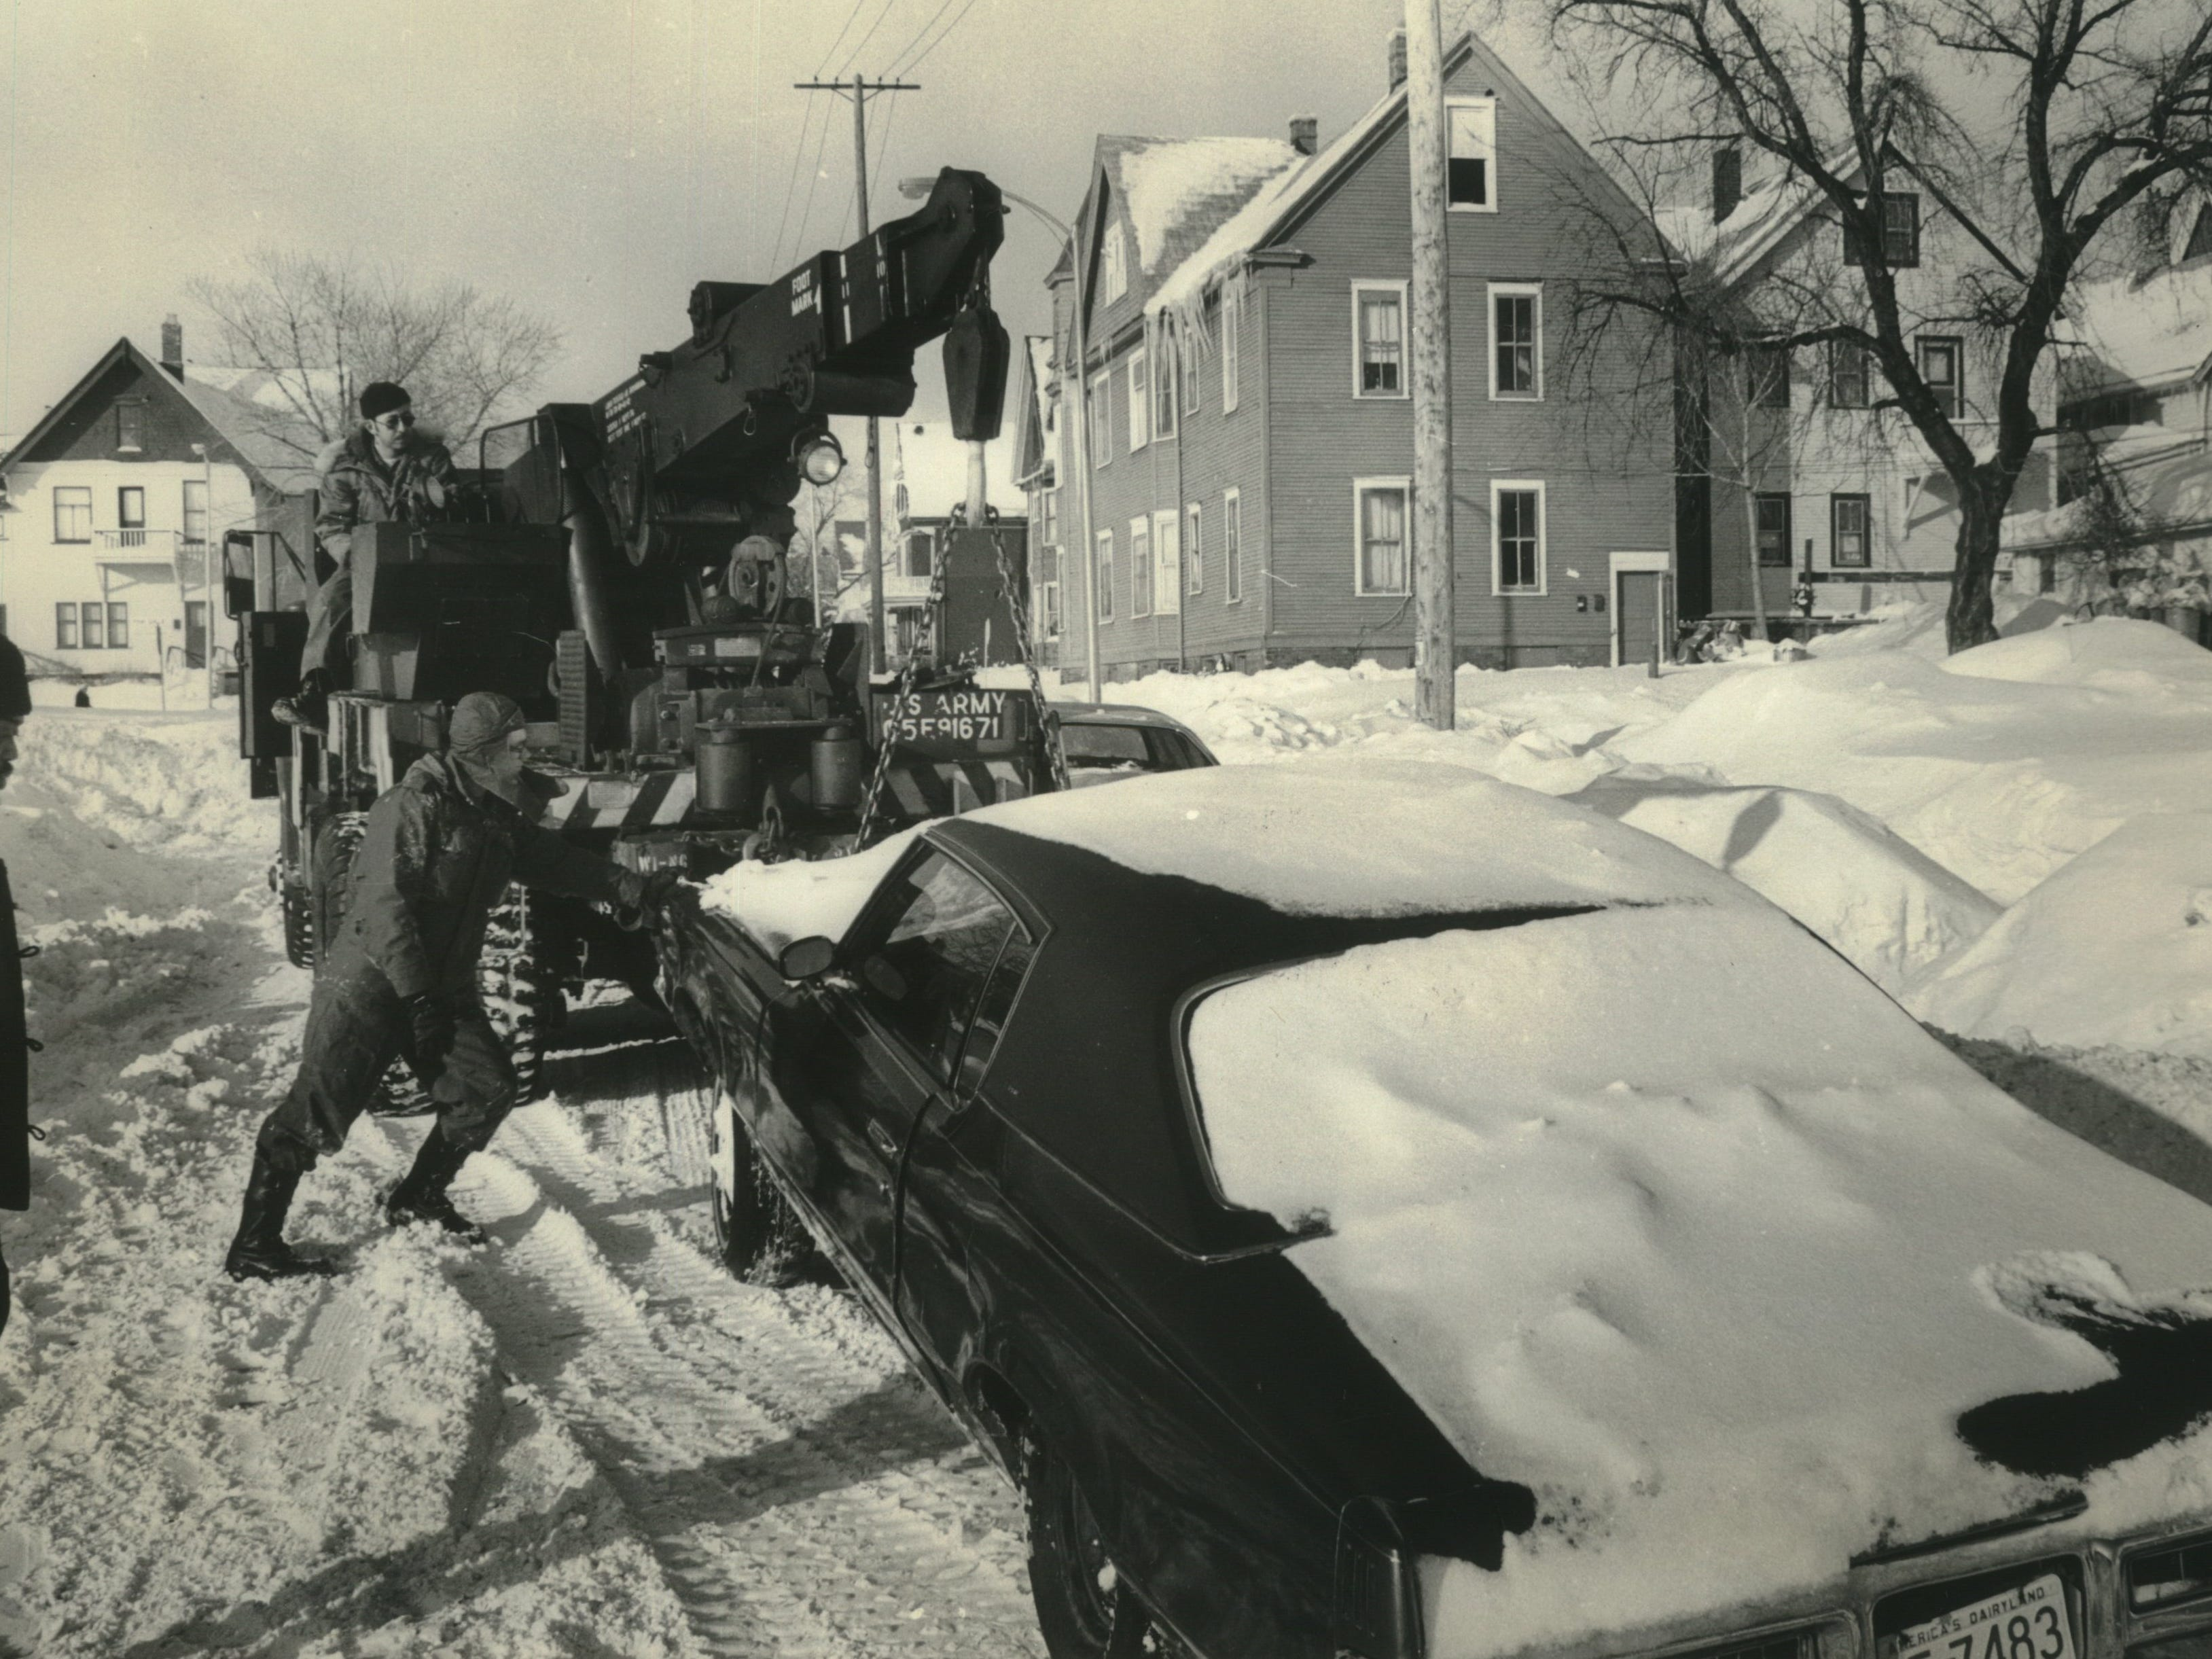 National Guard Sargent Ellston White (foreground) and Master Sargent Jack Harrahan move a car out of the snow at 28th and Walnut streets on Jan. 17, 1979. The National Guard was called out to help city crews clear streets after Milwaukee was socked with its second major snowstorm in two weeks. This photo was published in the Jan. 18, 1979, Milwaukee Journal.